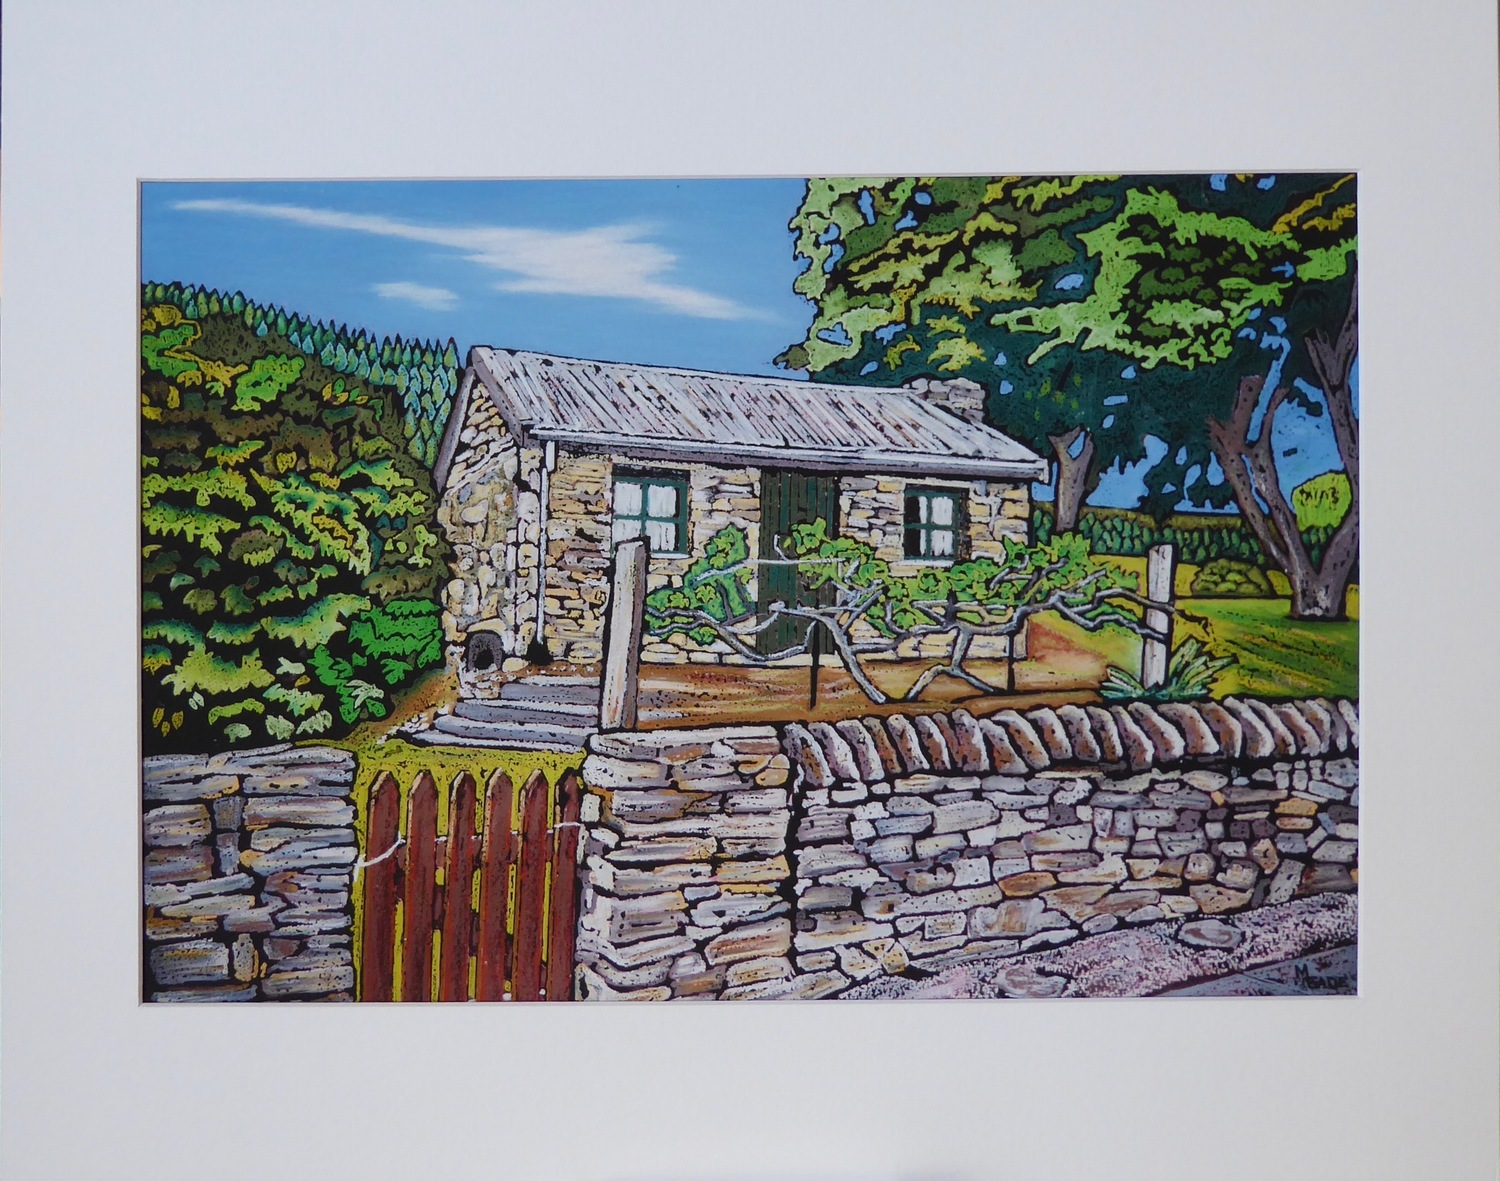 Print - Small - Holden Cottage, Clyde, Central Otago